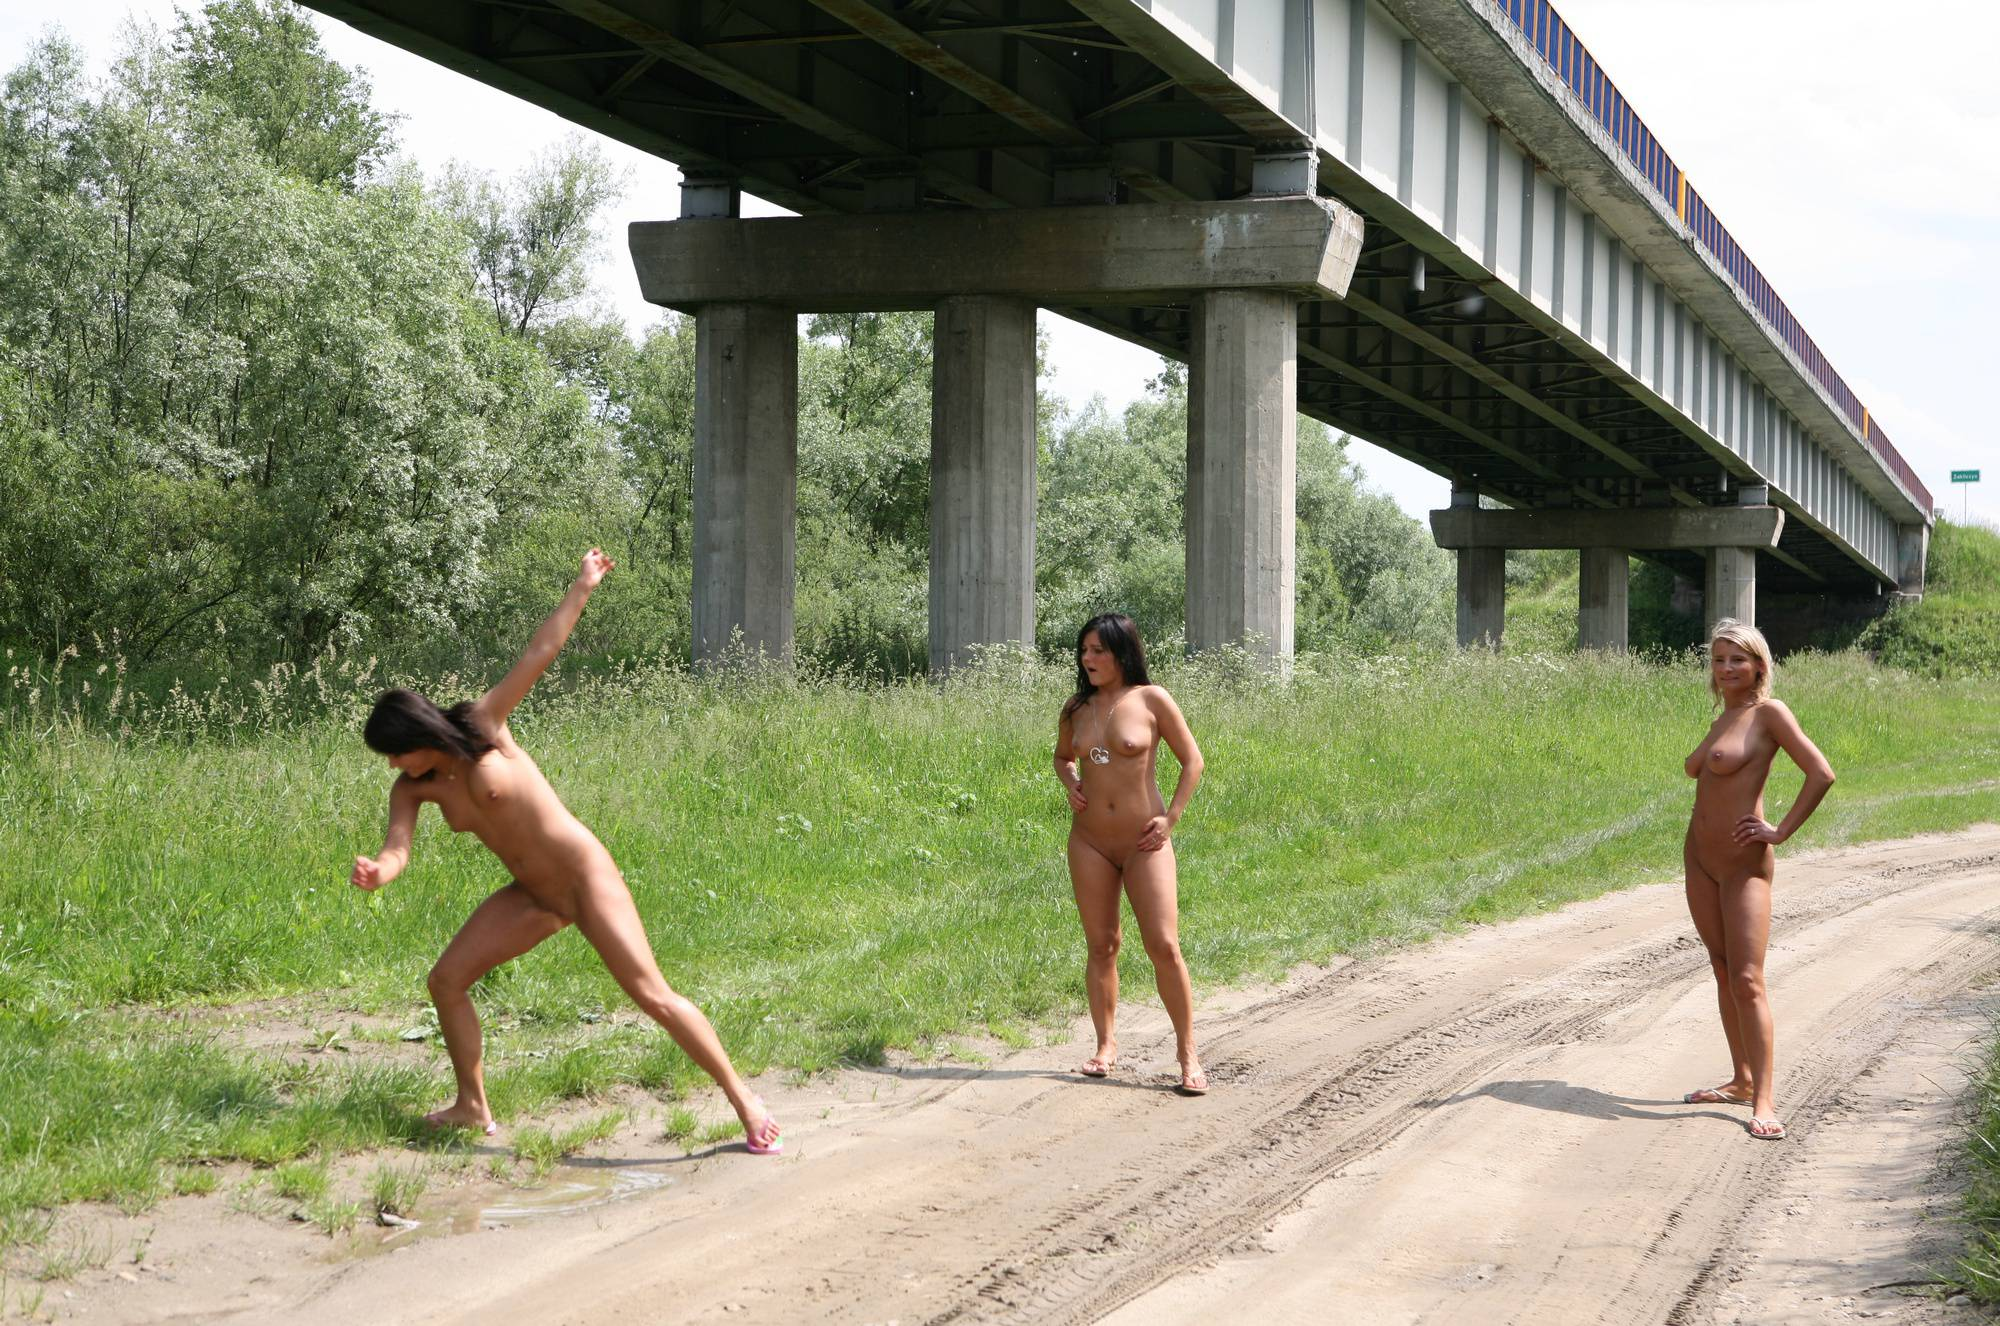 Nudist Photos Park Under The Bridge - 2